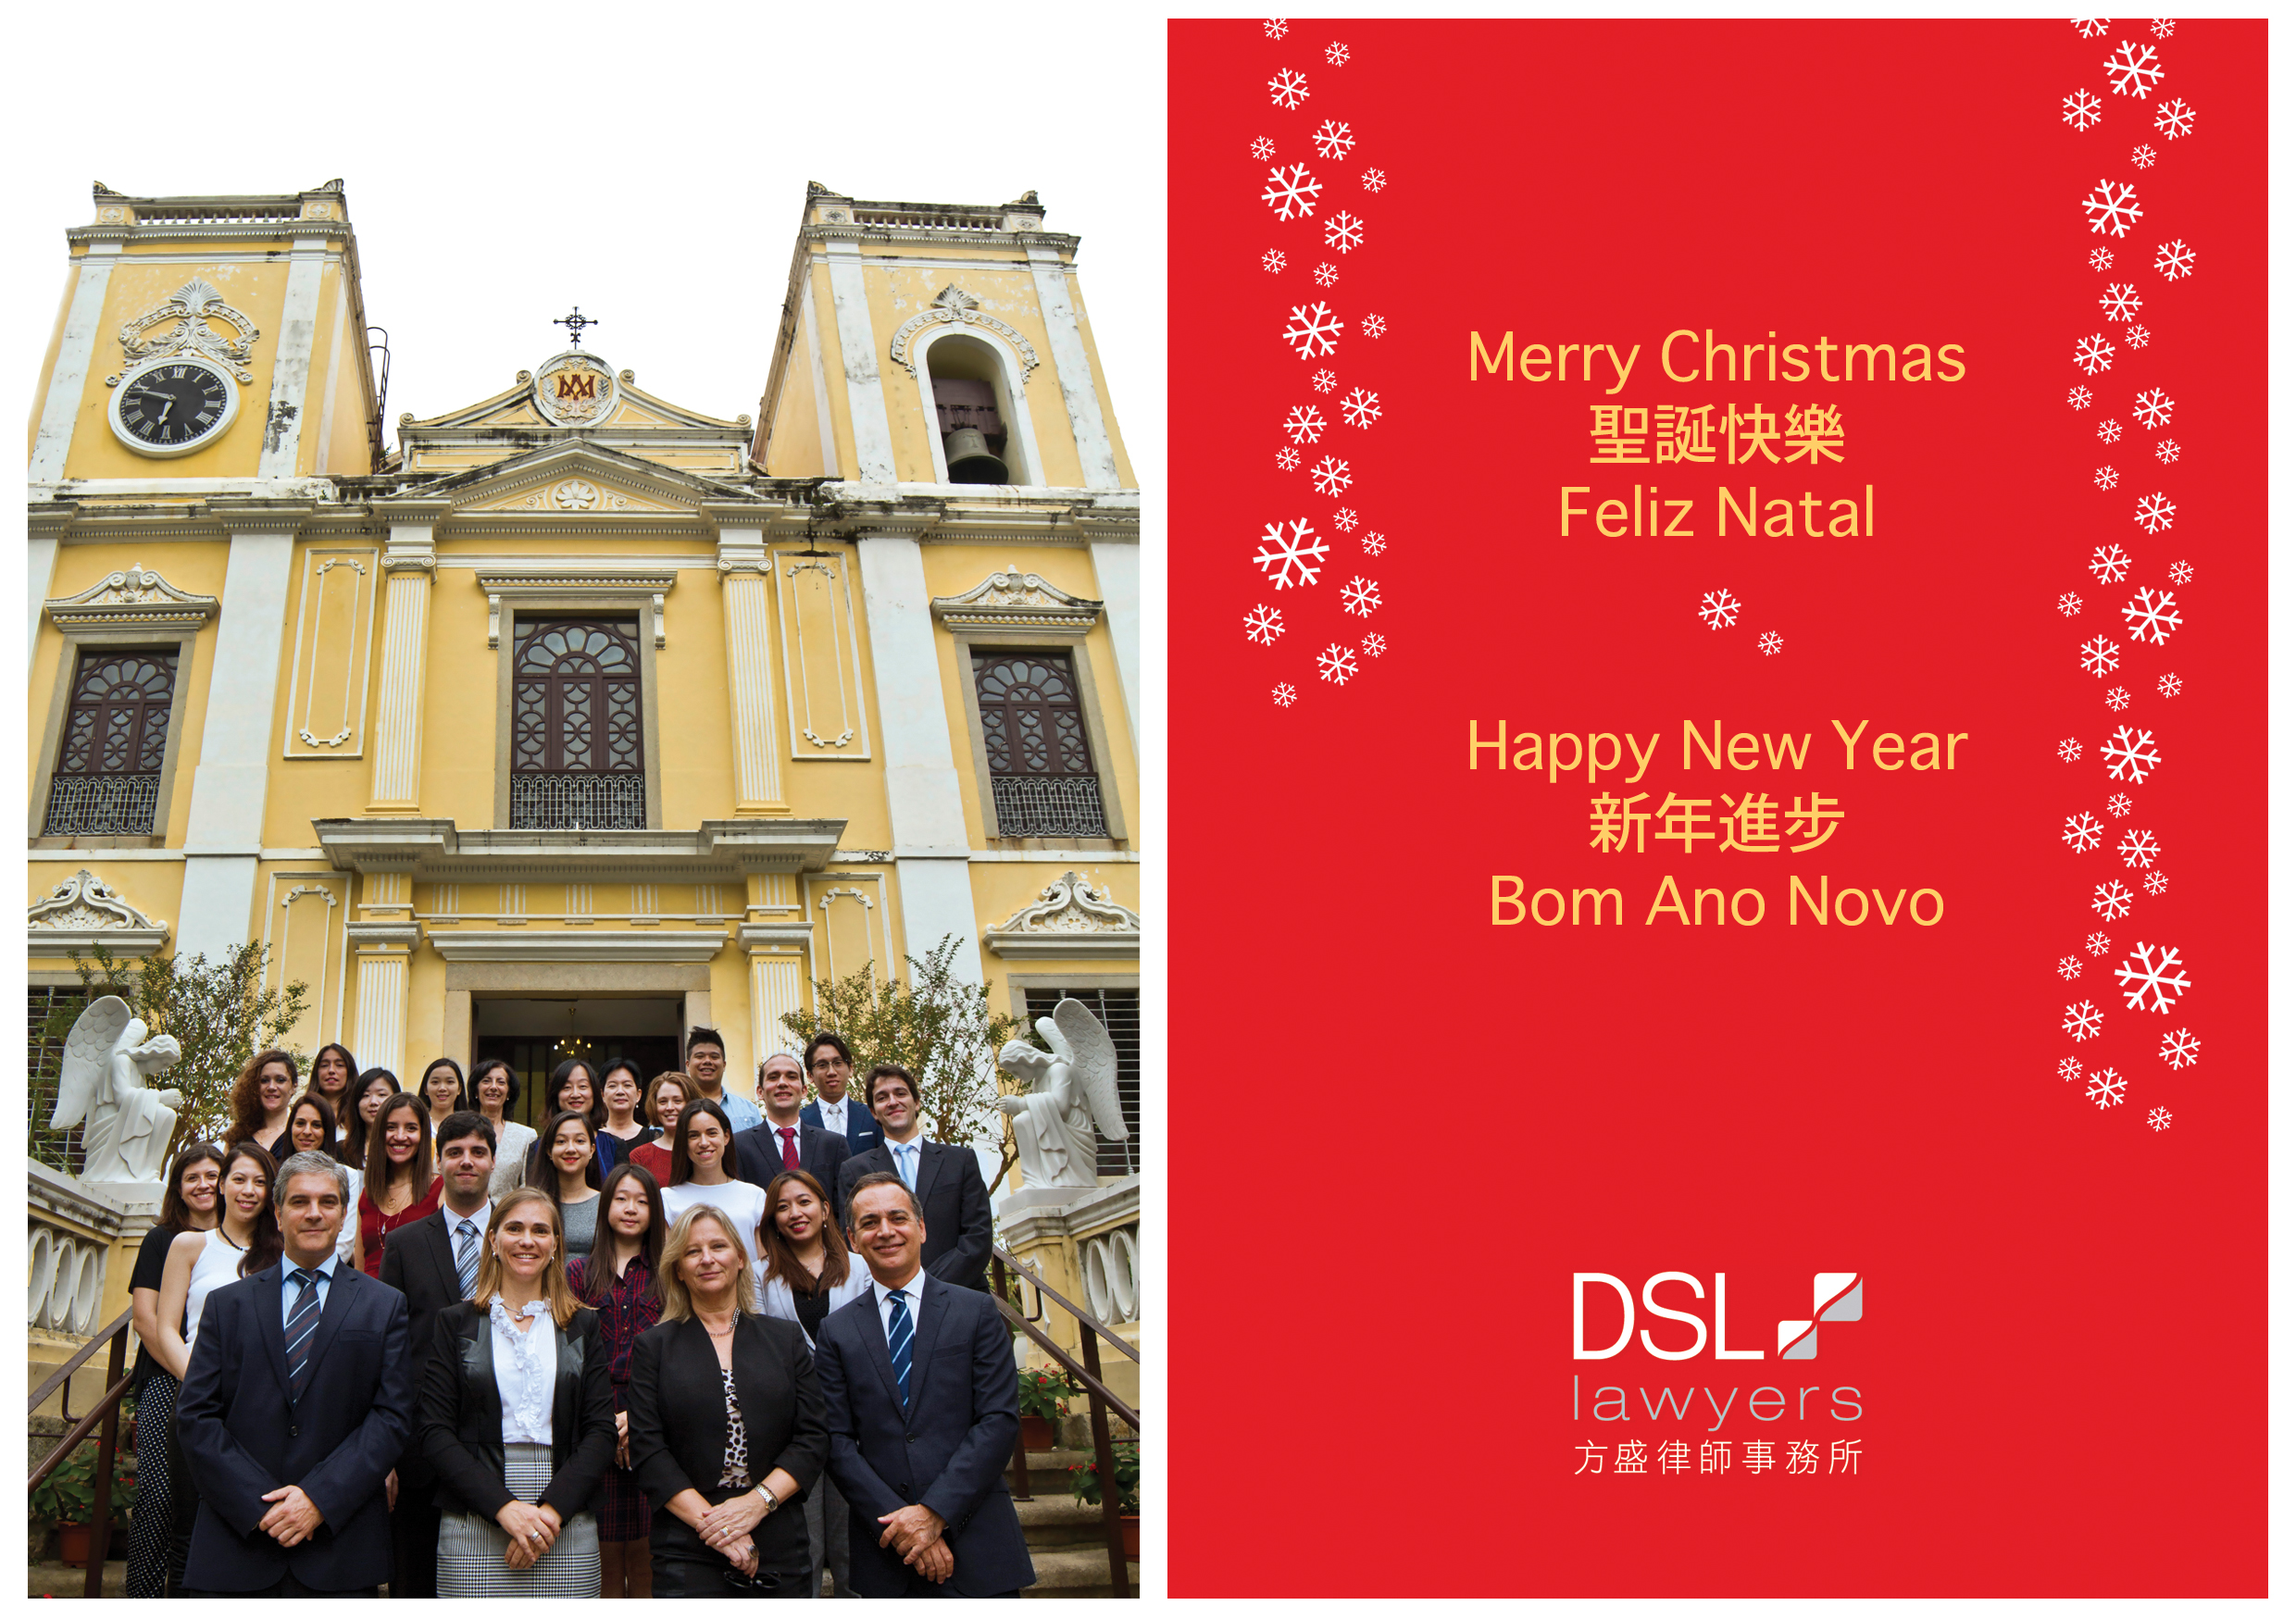 Merry Christmas And A Happy New Year Dsl Lawyers